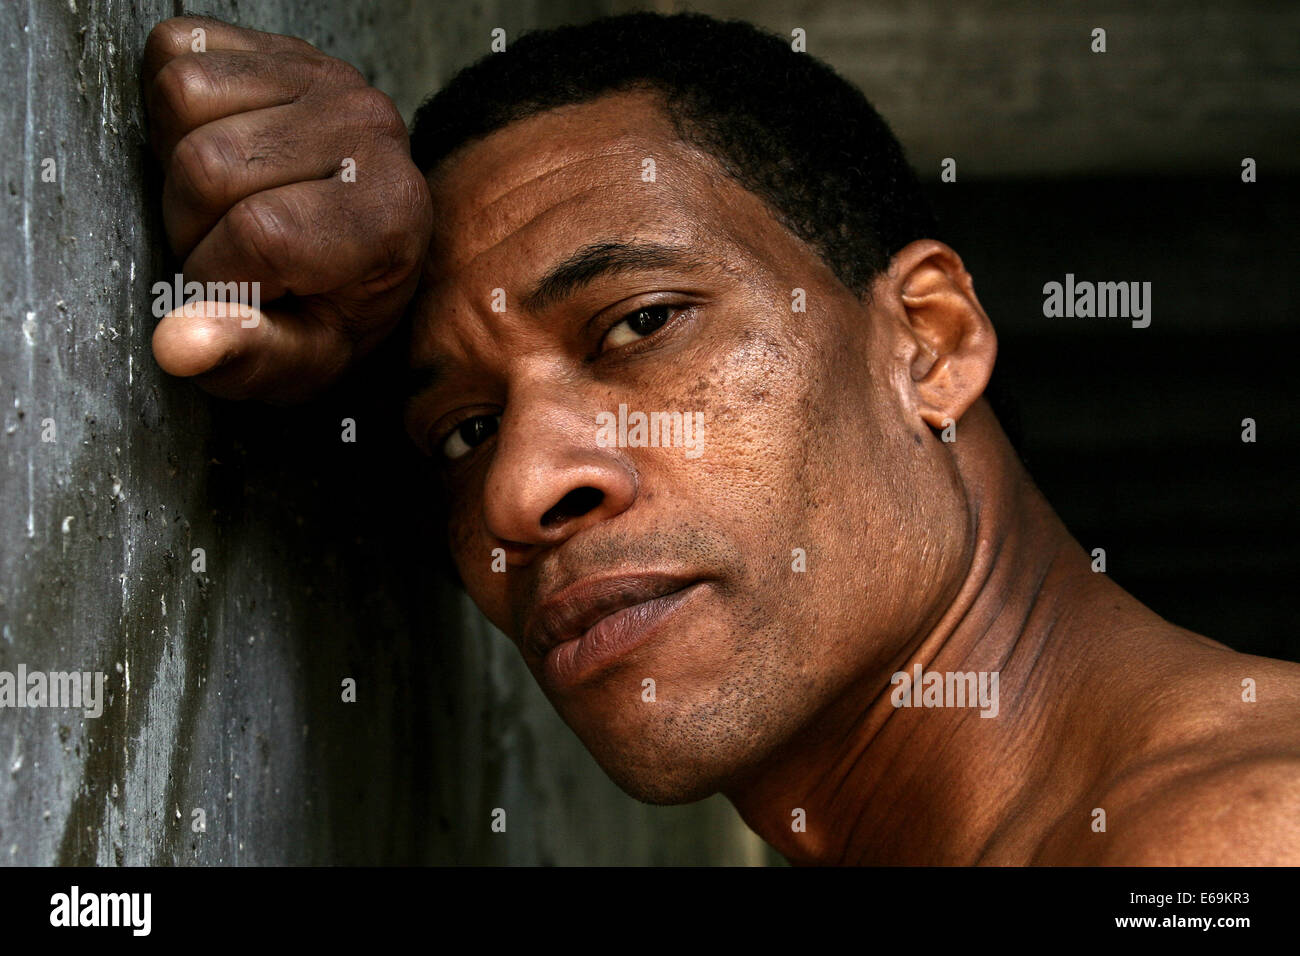 man,exhausted,portrait - Stock Image